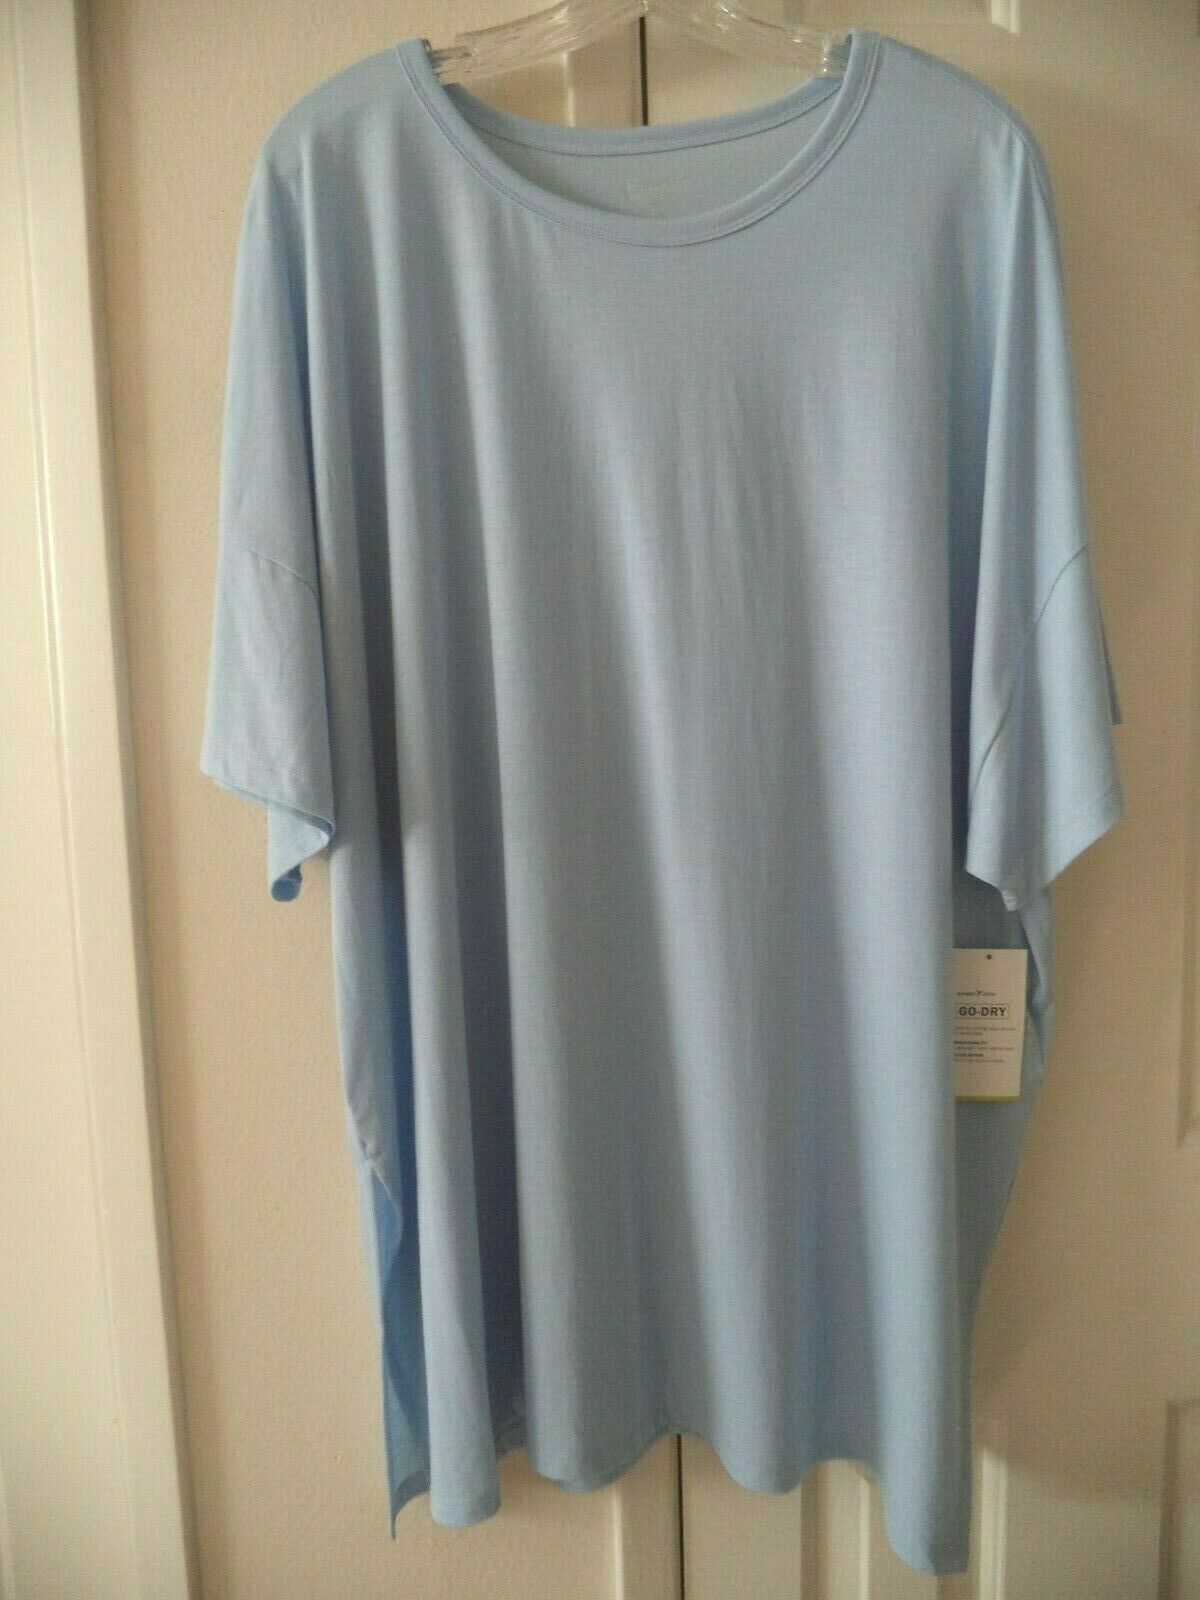 Old Navy Active Lt Wgt Sky Powder Blue Relax Fit Side Slit T-shirt 3X 24 26 XXL